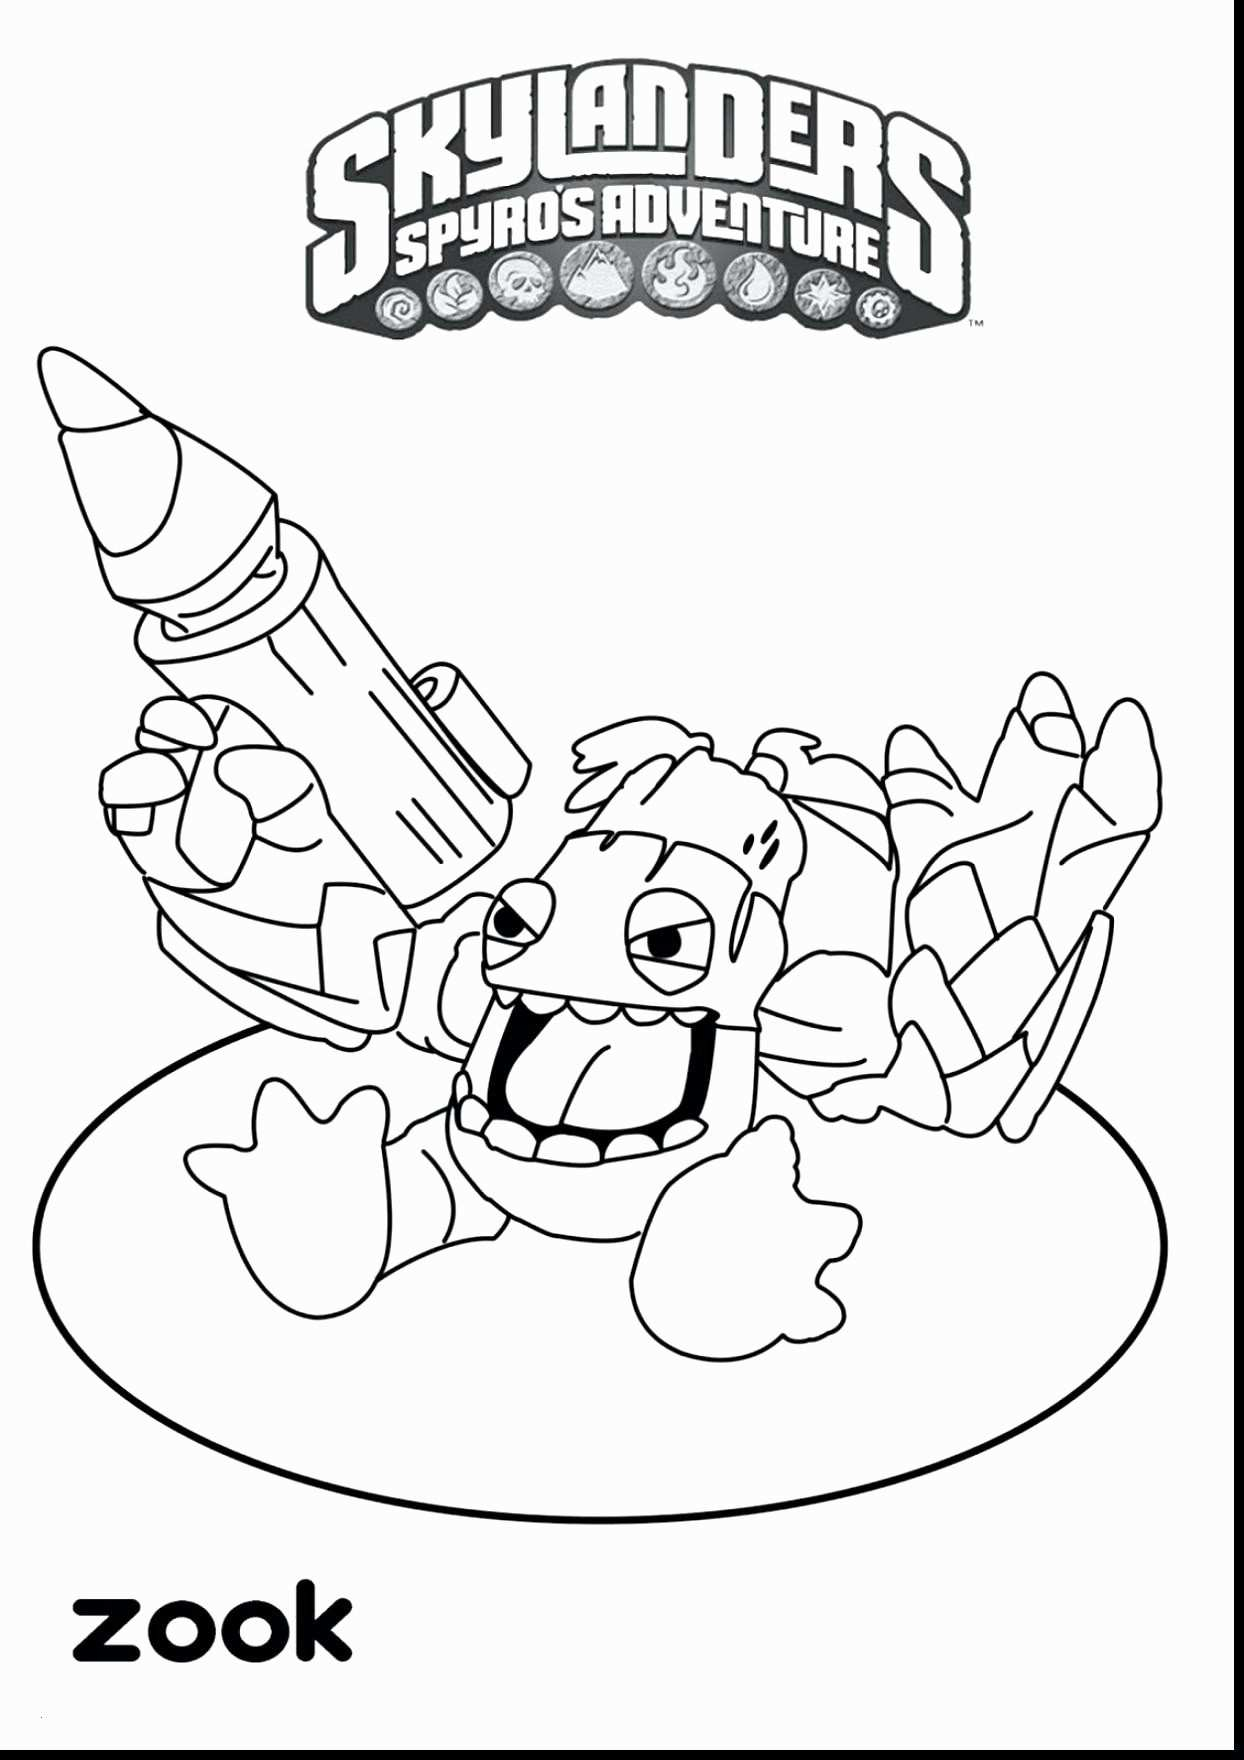 Flip Flop Coloring Pages Flip Flop Coloring Pages Beautiful Rain Boots Page For Ba Boom